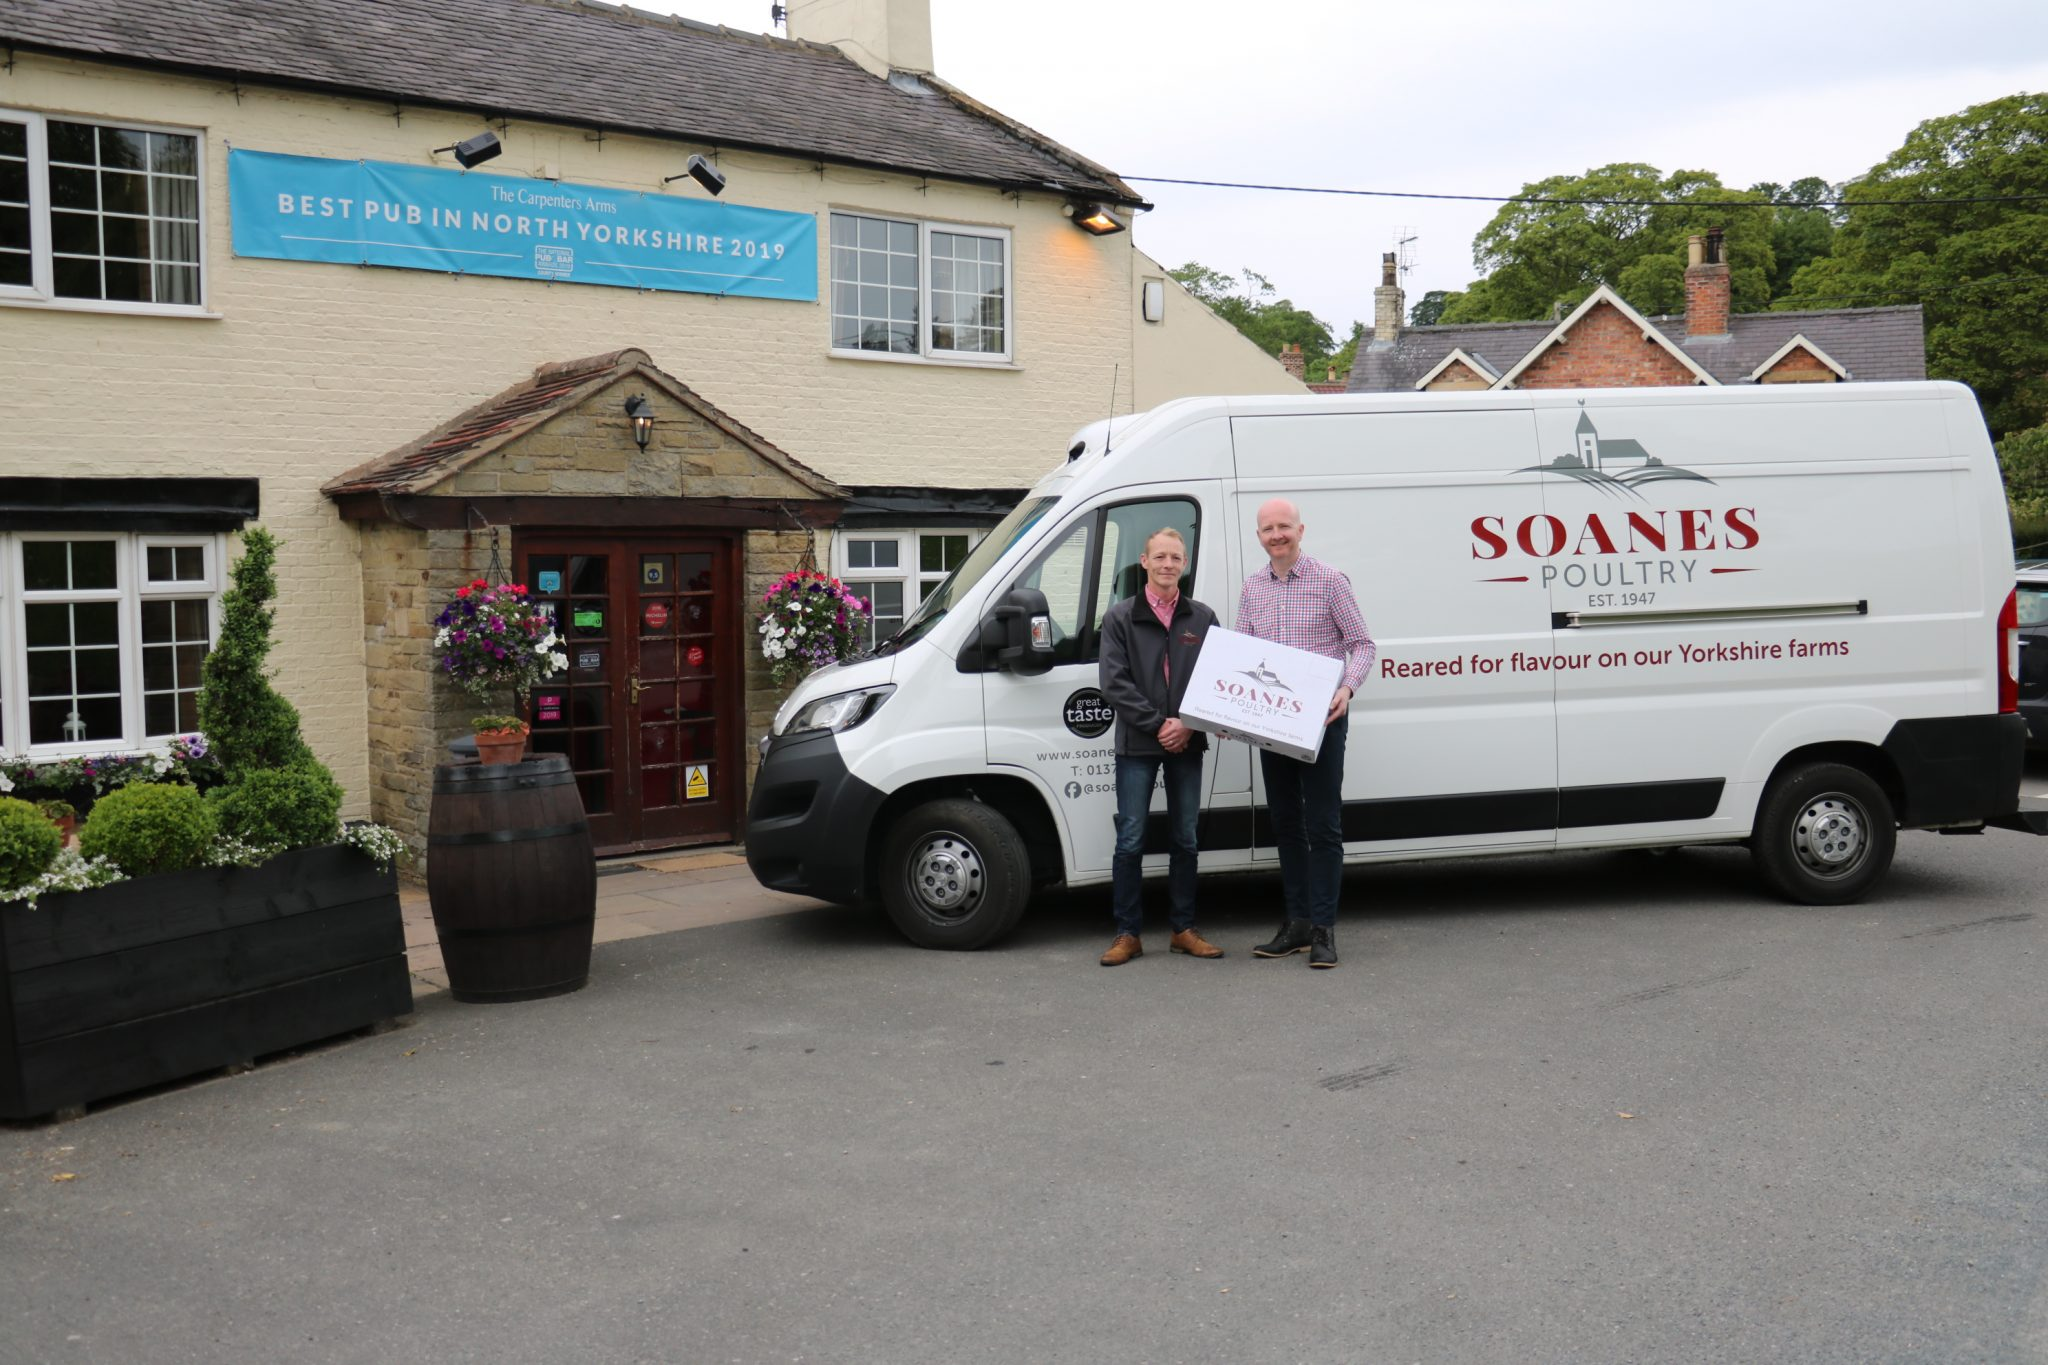 Richard Cross from Soanes Poultry and Jason Wardill from Provenance Inns and Hotels